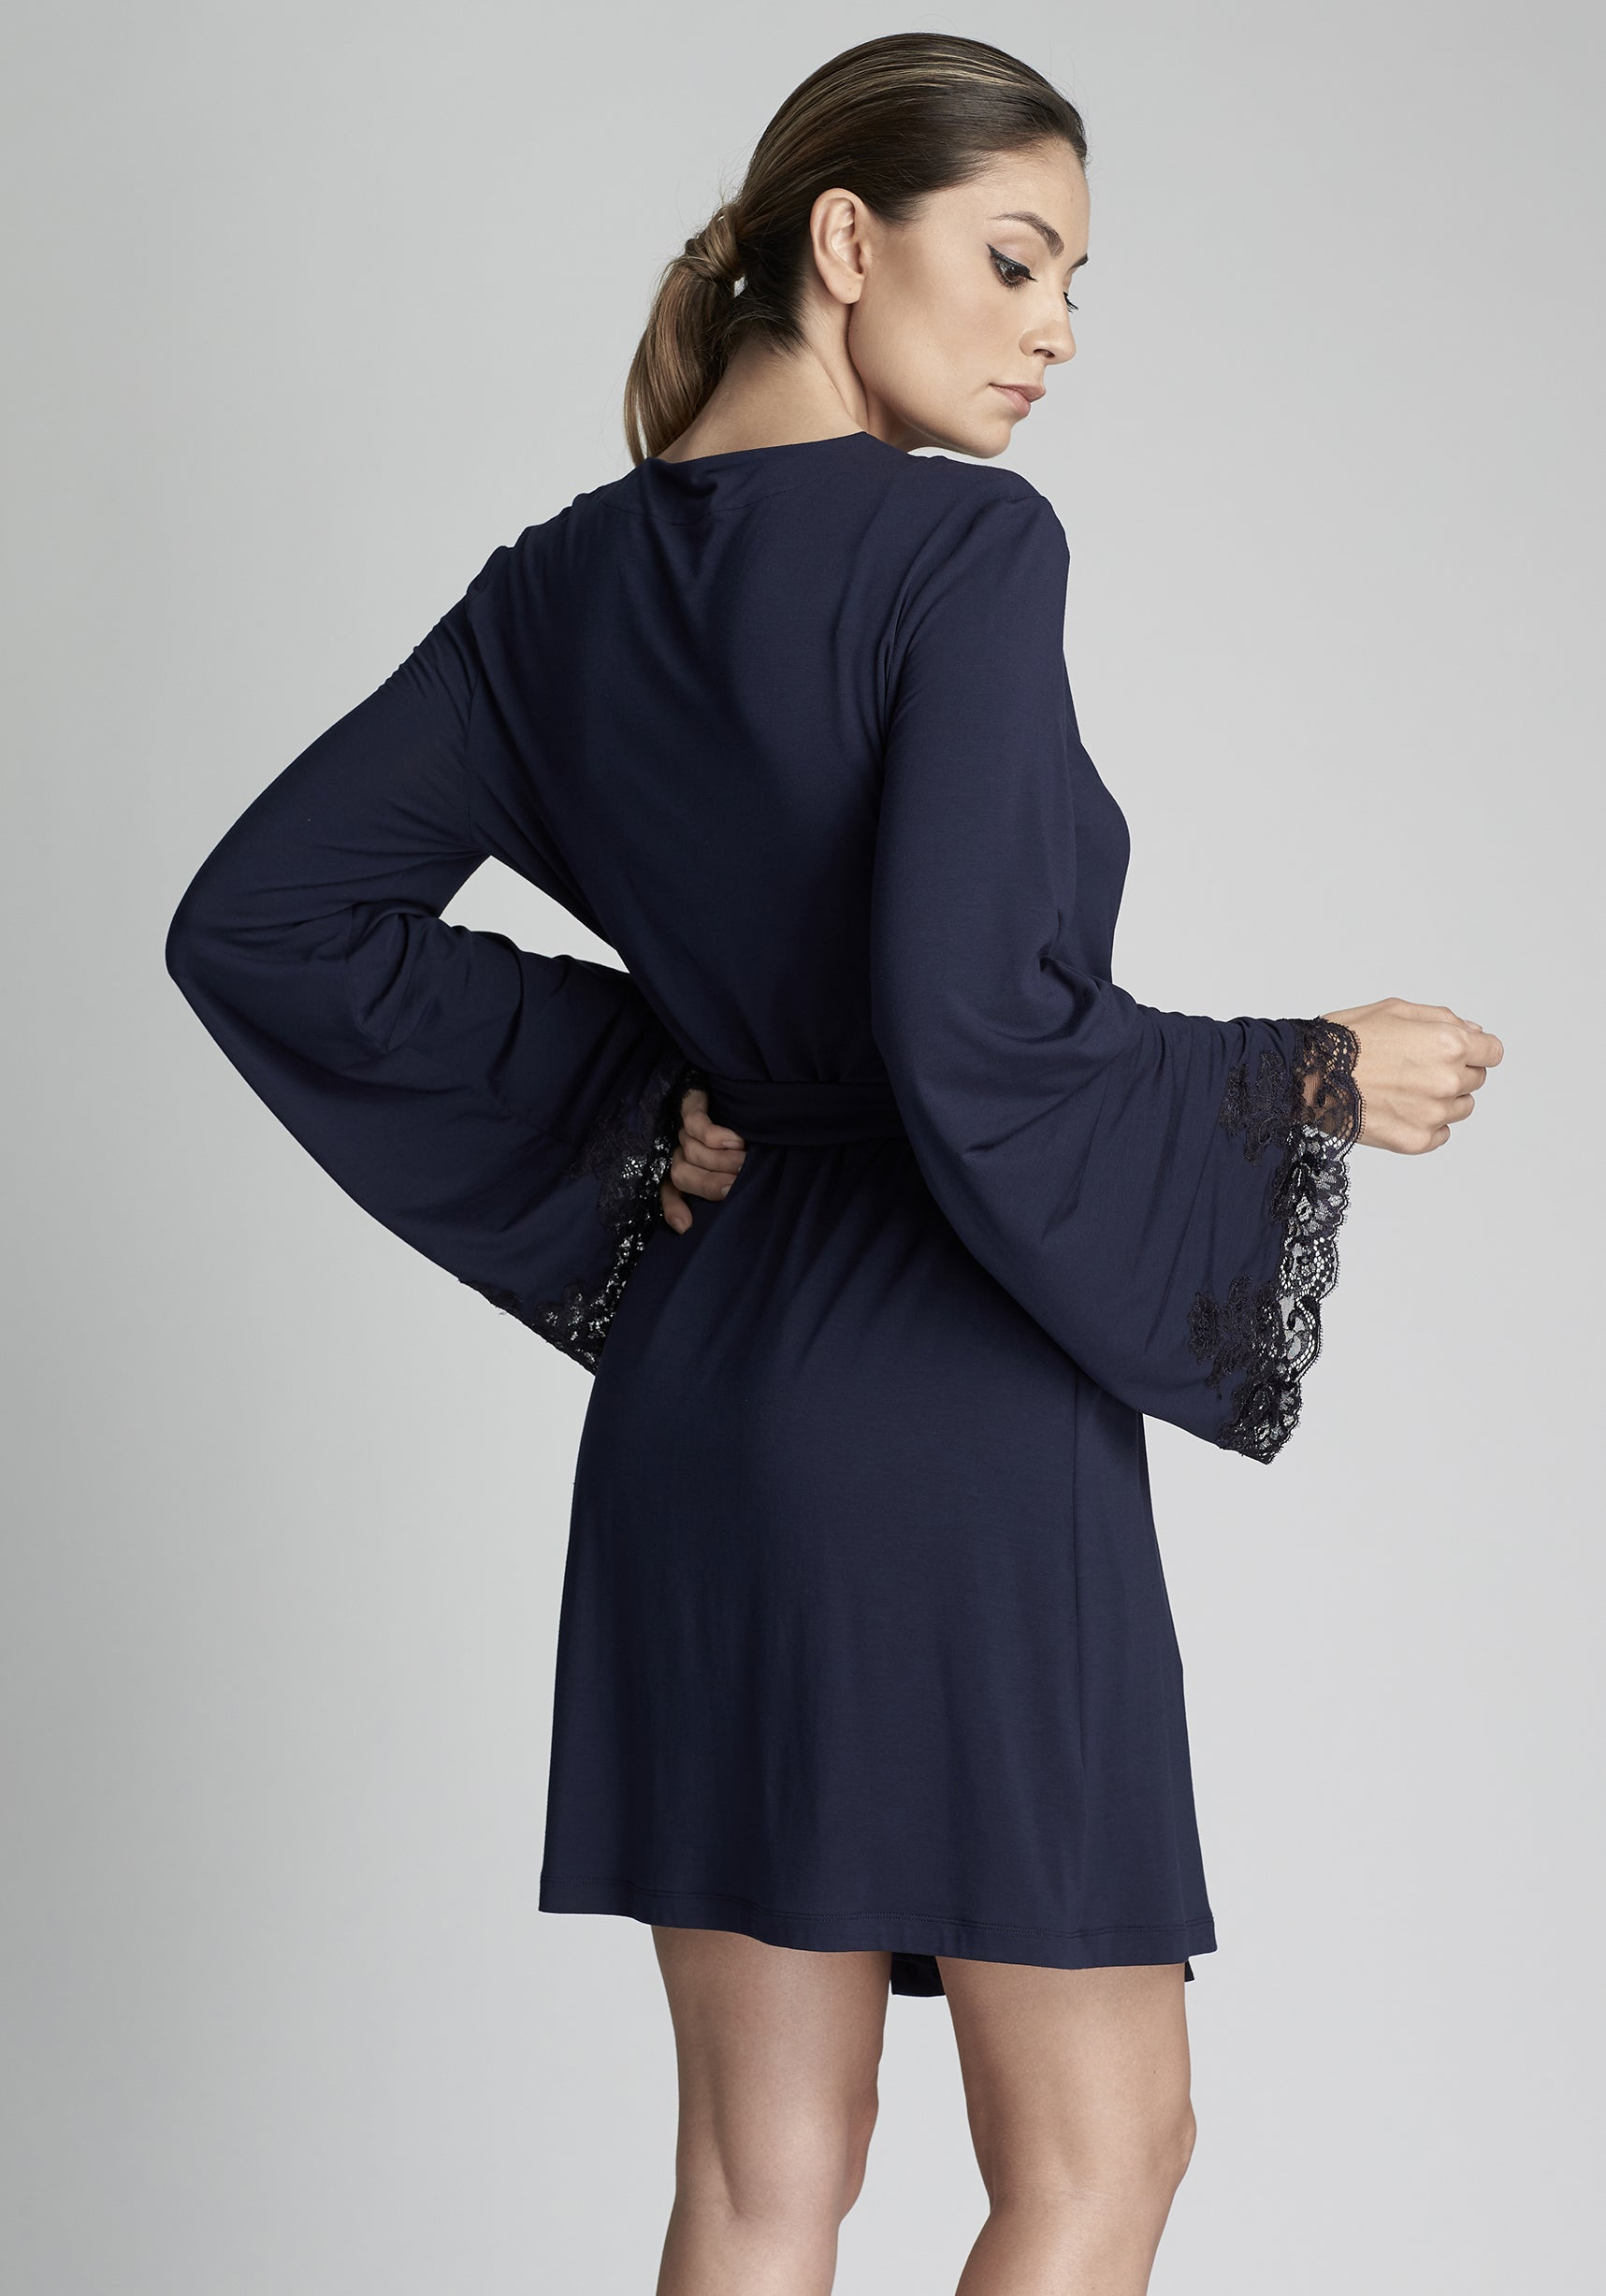 I.D. Sarrieri modal and lace robe in navy